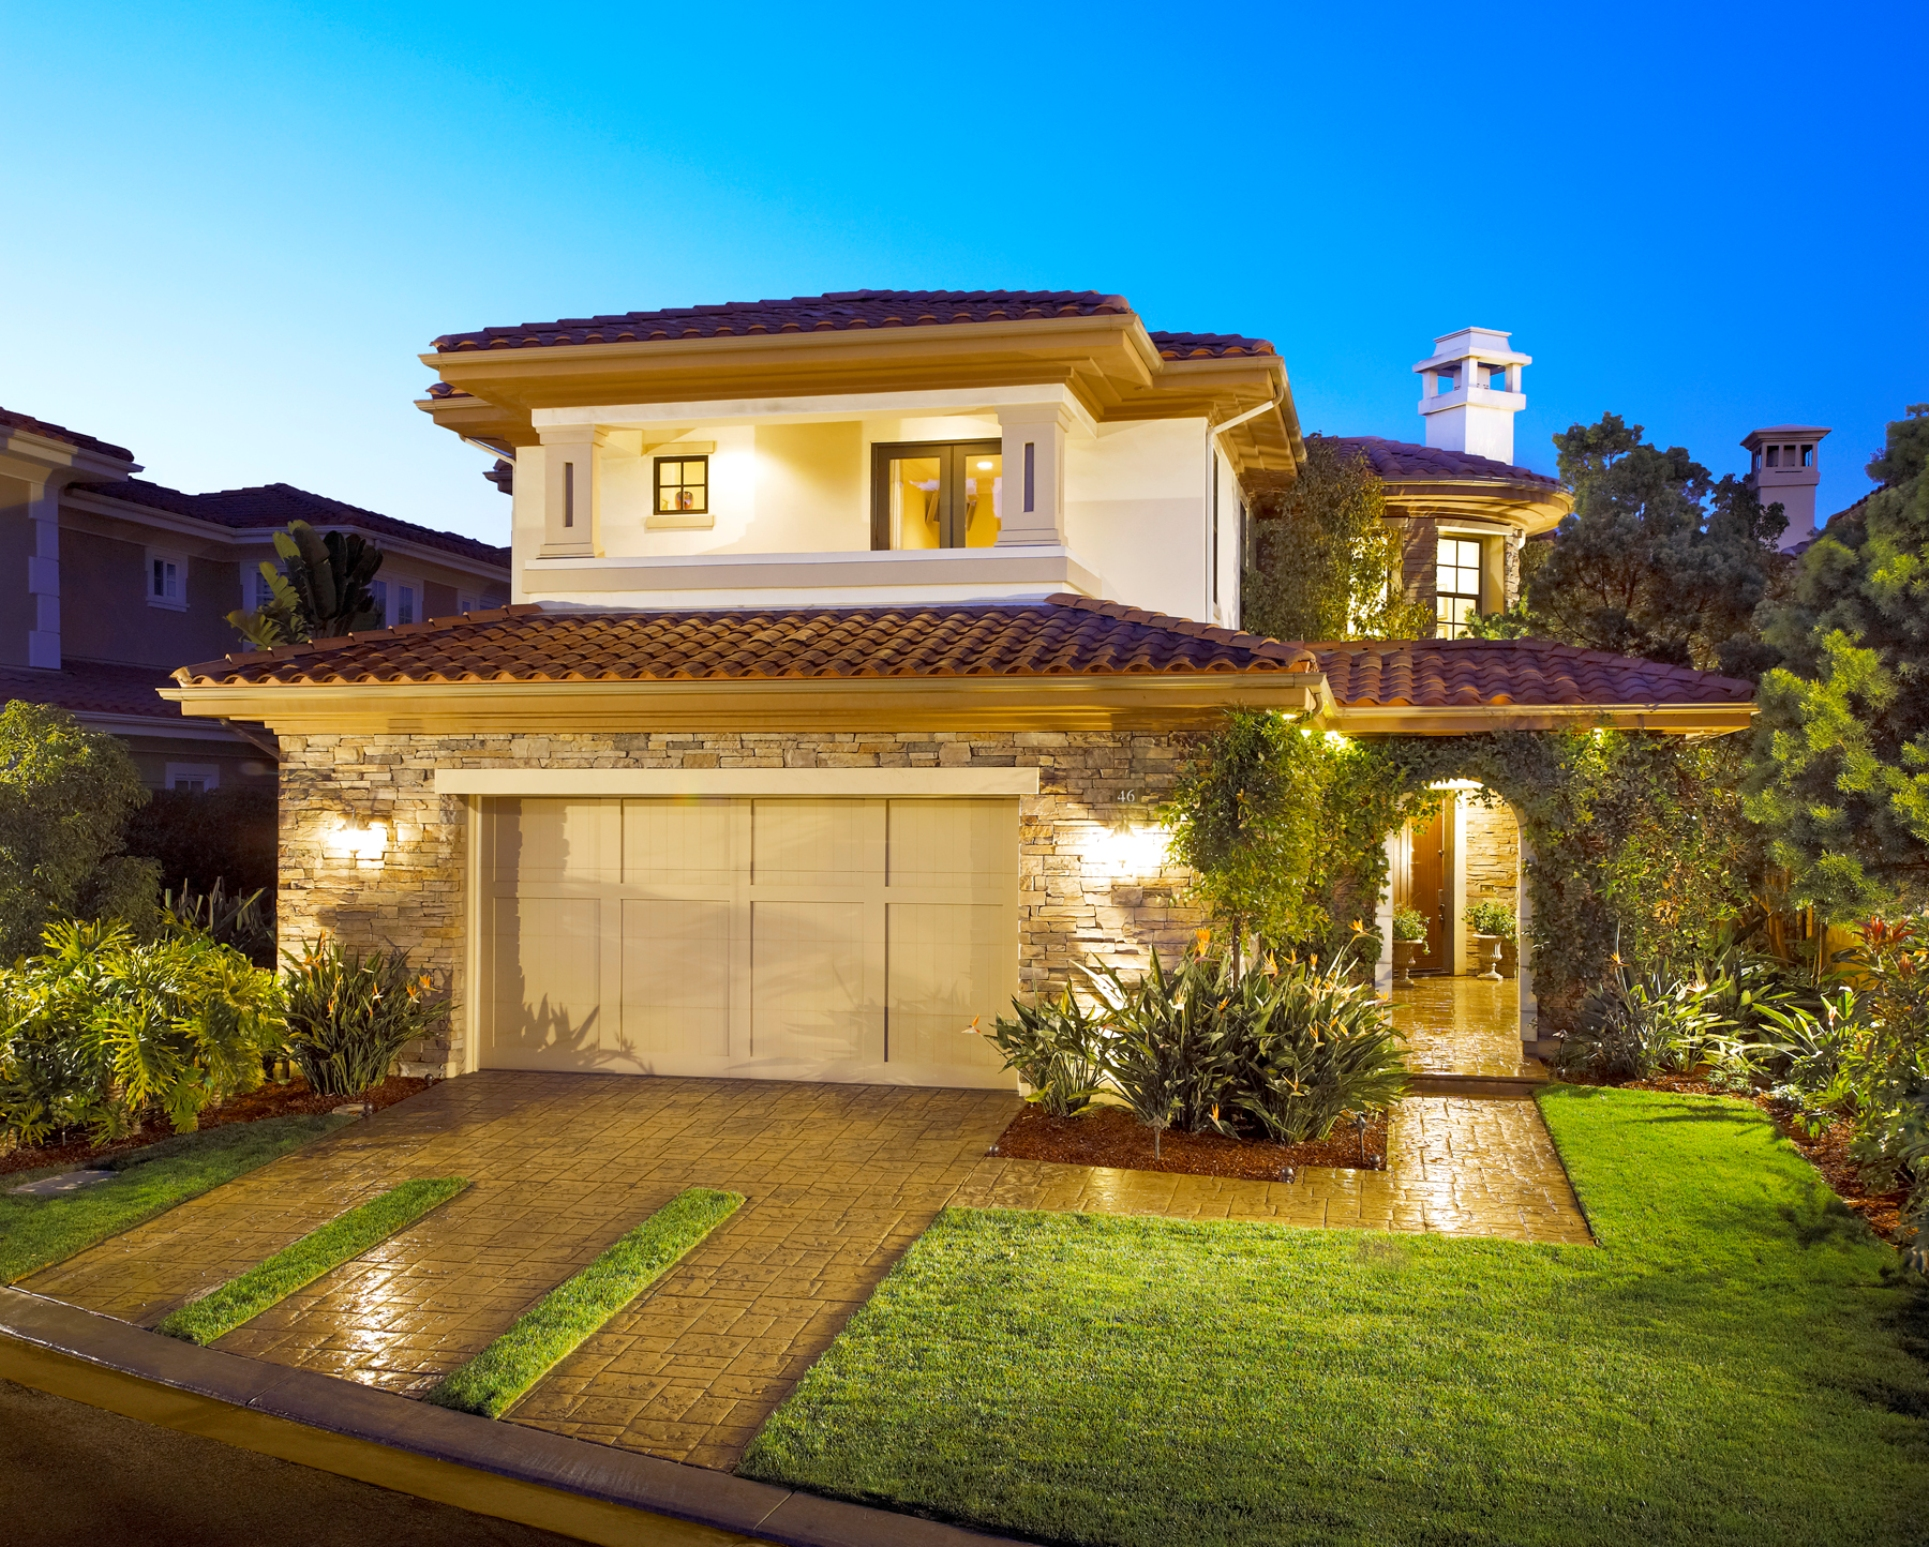 Homes for Sale in Dana Point, CA